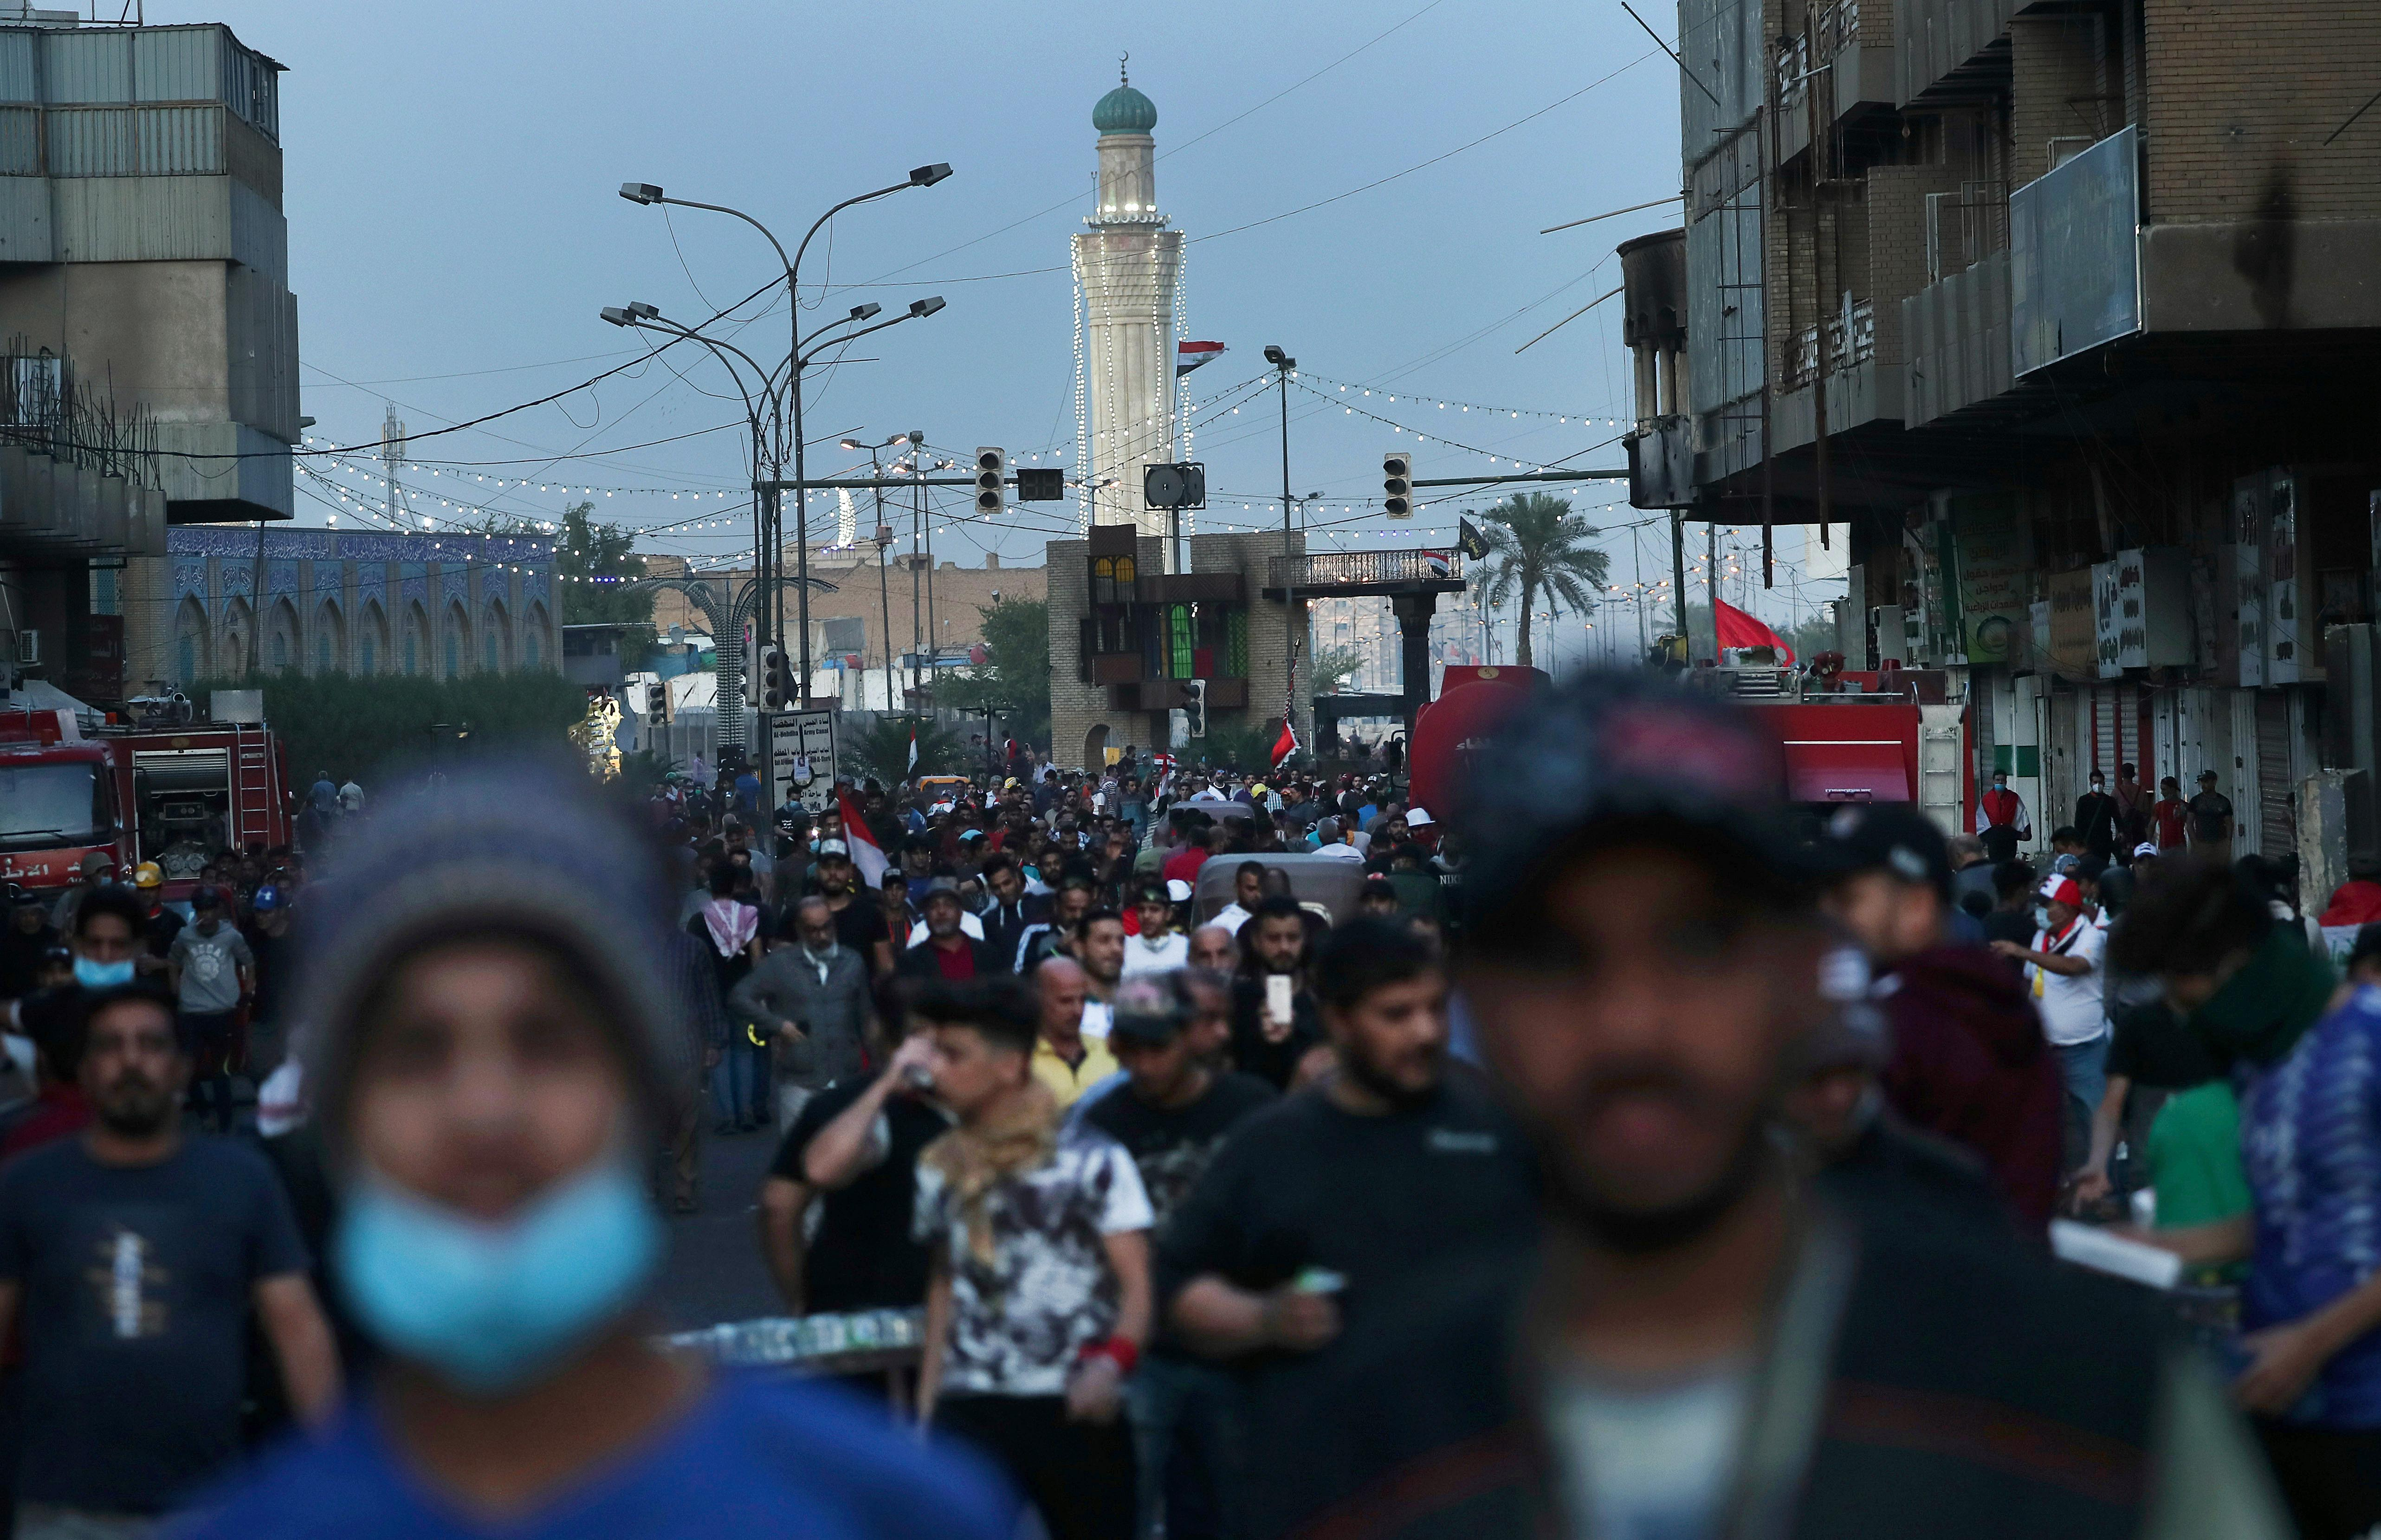 People walk through Khilani Square after protesters took control and reopened it, after clashes between Iraqi security forces and anti-government demonstrators in Baghdad, Iraq, Saturday, Nov. 16, 2019. (AP Photo/Hadi Mizban)